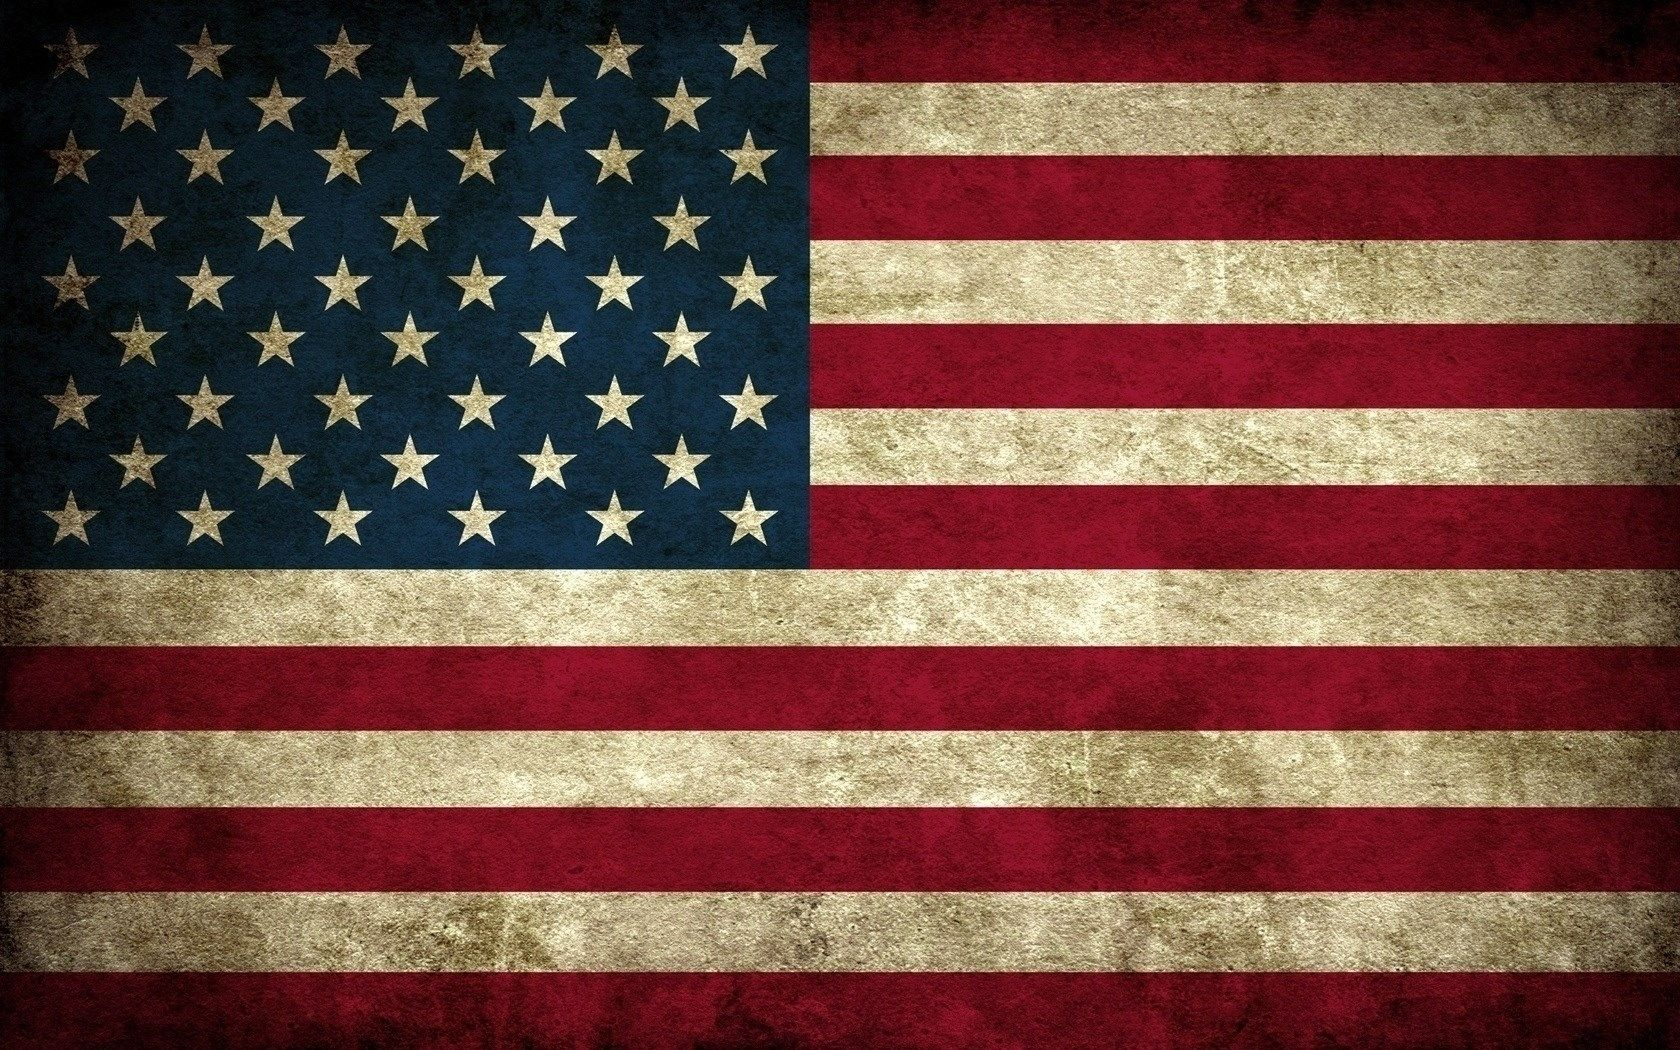 2017 03 27 American Flag Free Desktop Wallpaper 1929273 American Flag Wallpaper American Flag Flag